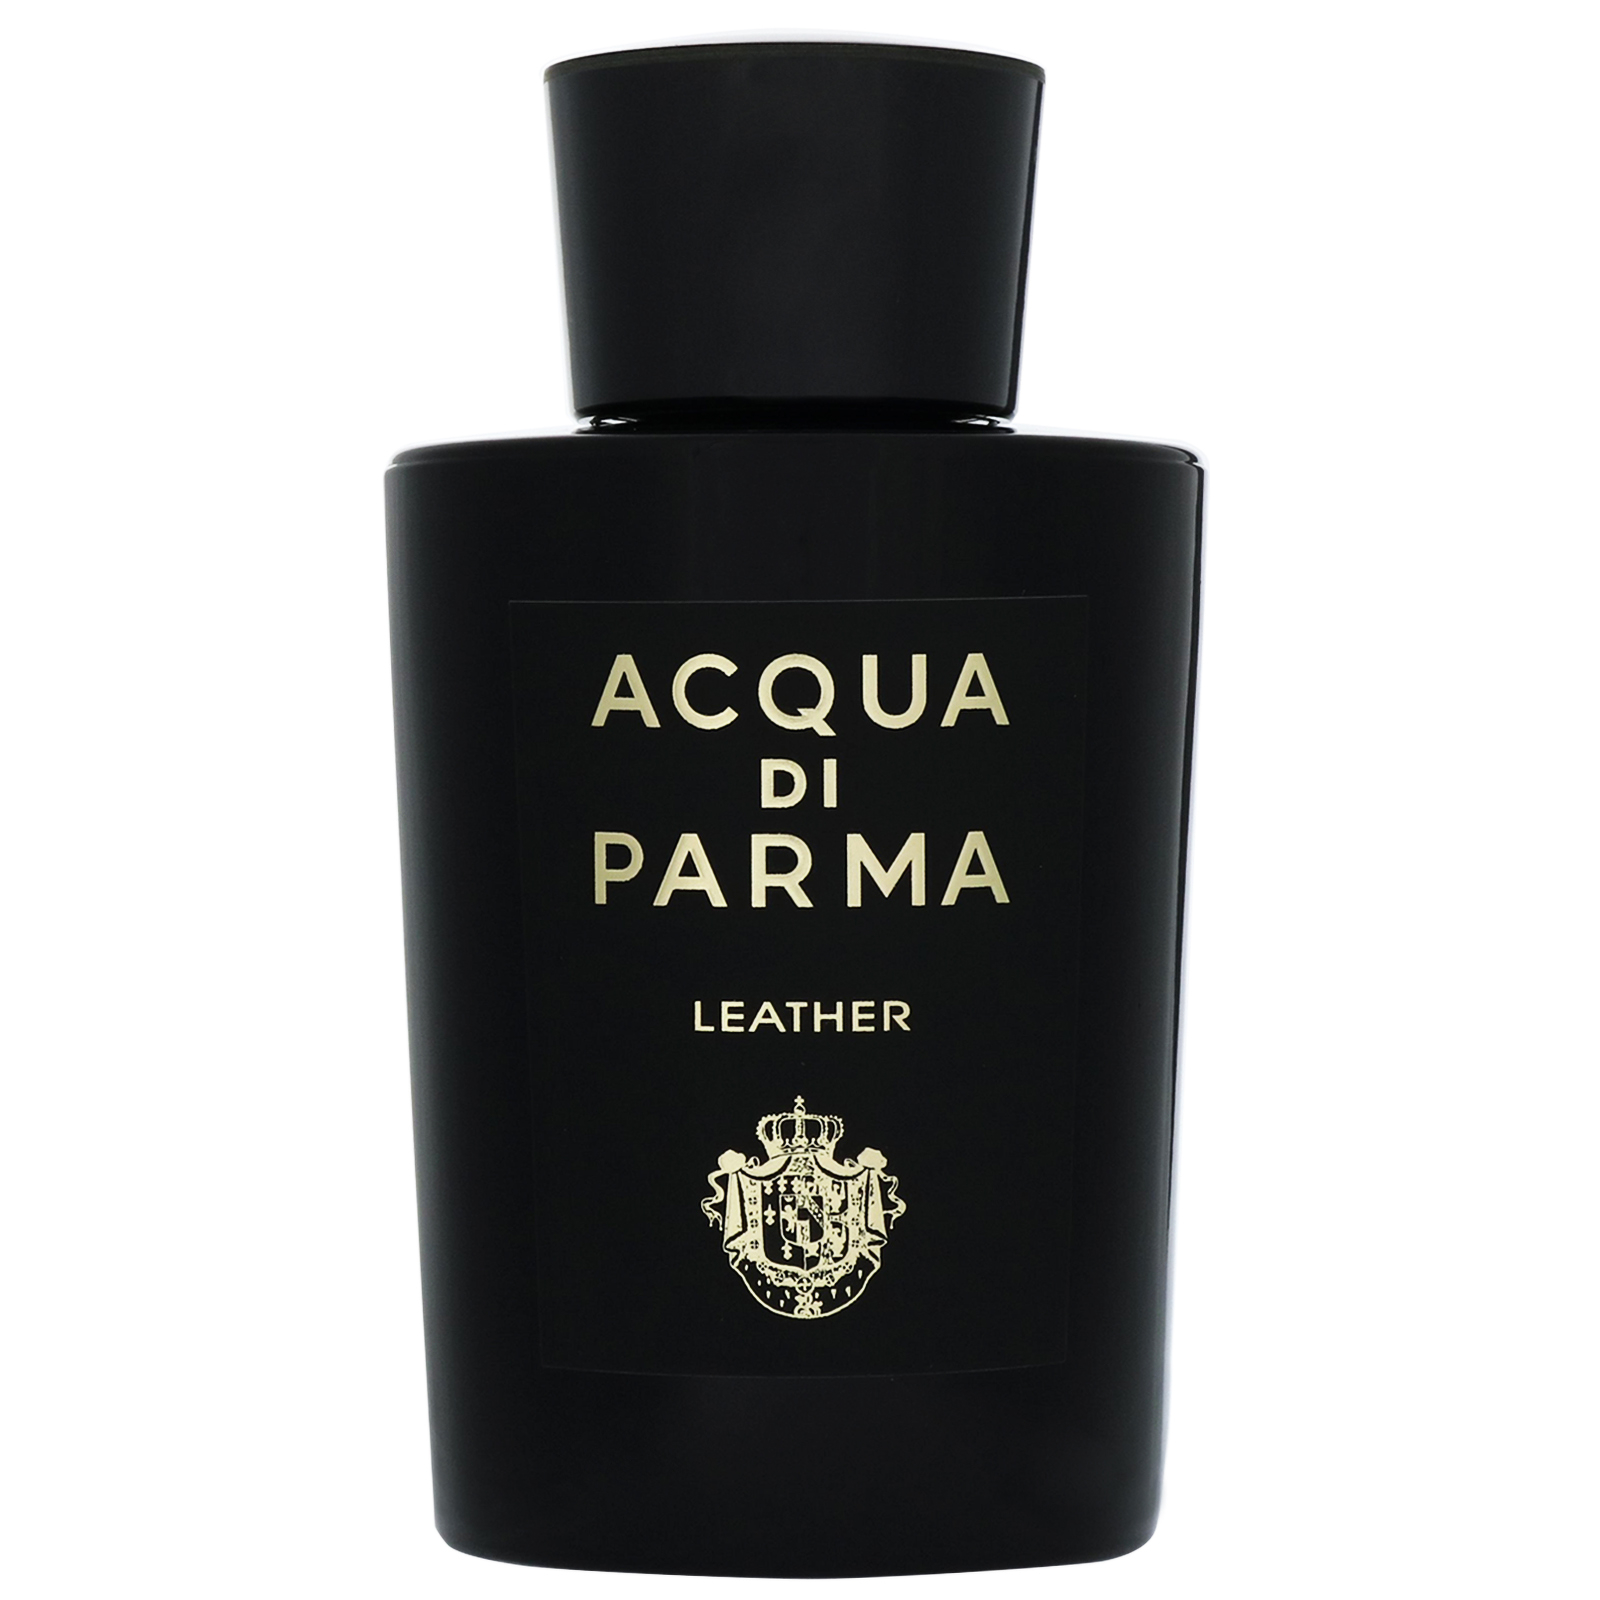 Acqua Di Parma Leather Eau de Parfum Spray 180ml